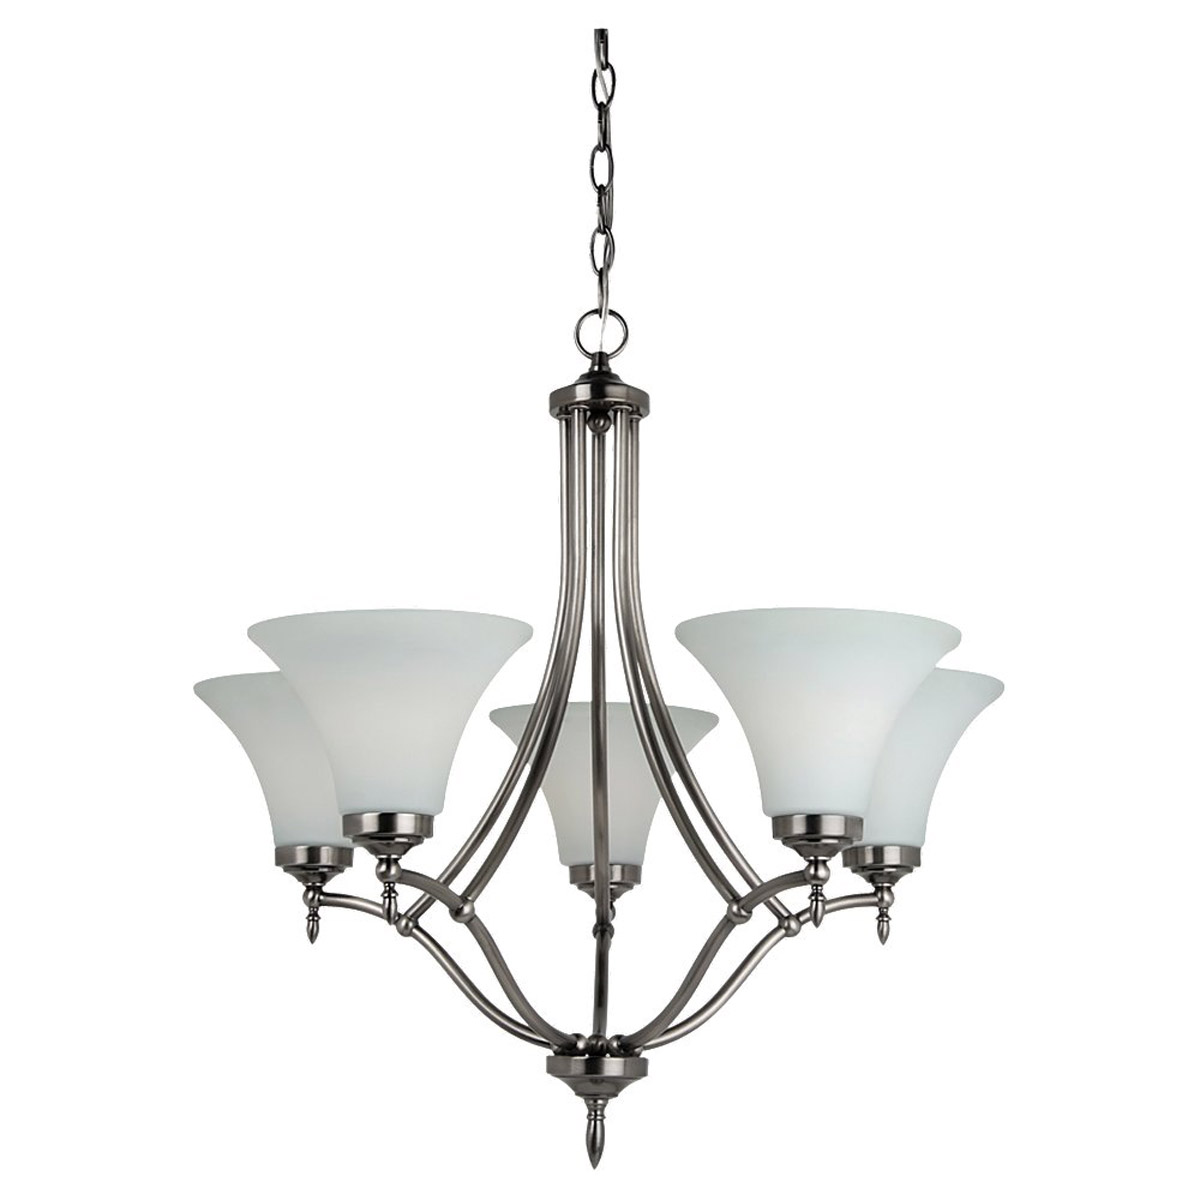 Sea Gull 31181BLE-965 Montreal 5 Light 26 inch Antique Brushed Nickel Chandelier Ceiling Light in Etched,  White Inside Glass, Fluorescent photo